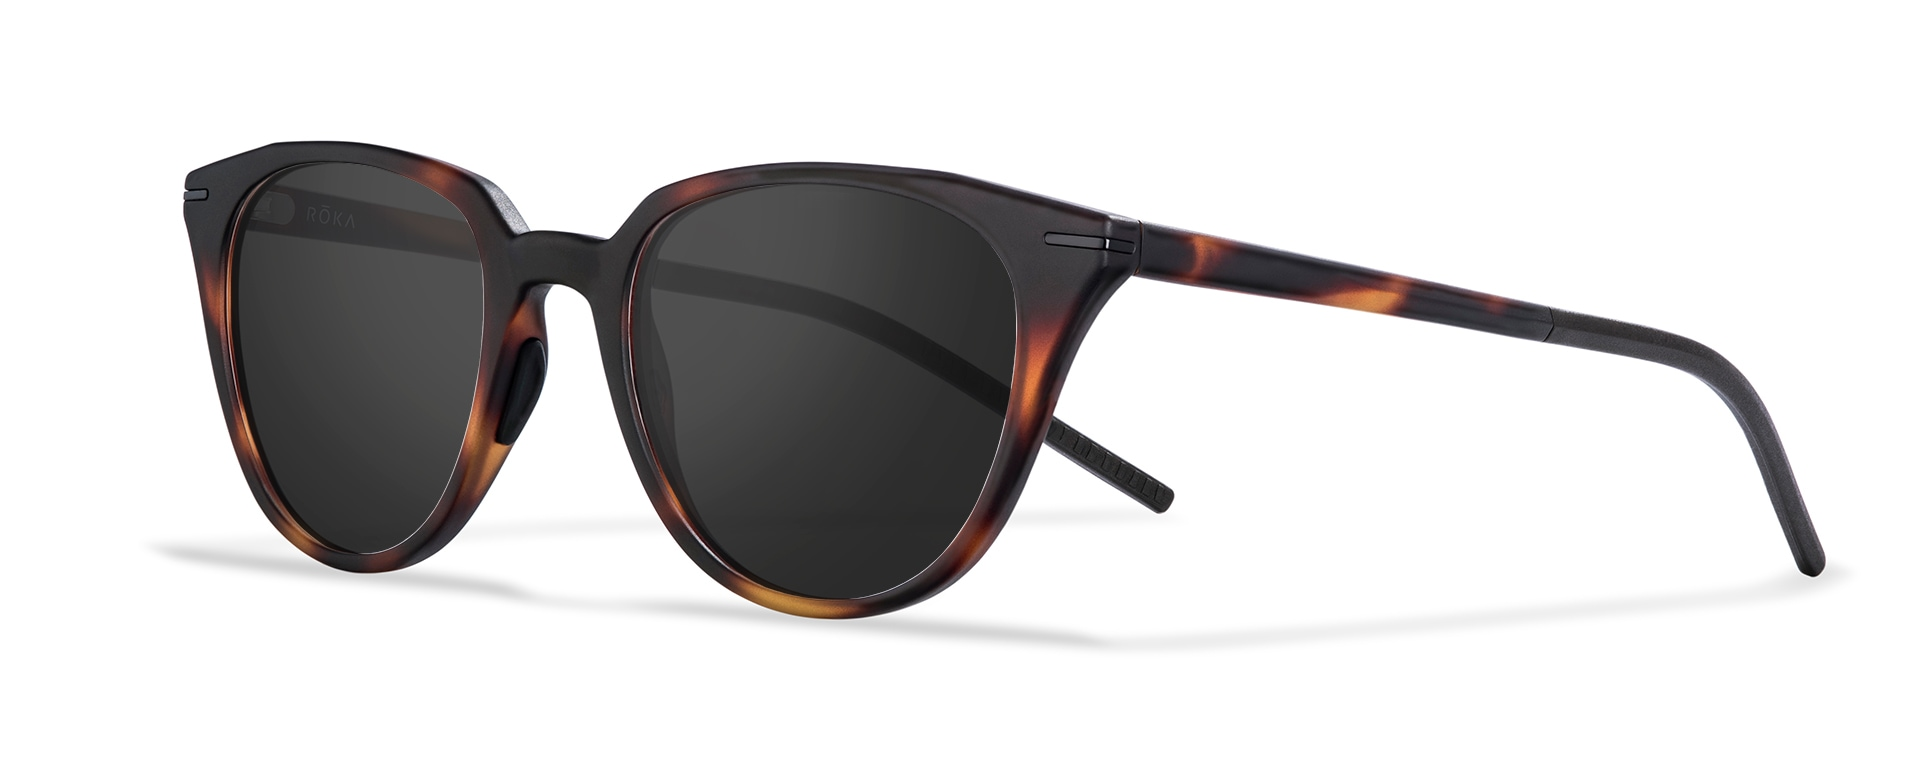 Three-quarter view of the Lola tortoise frame with a dark carbon lens.